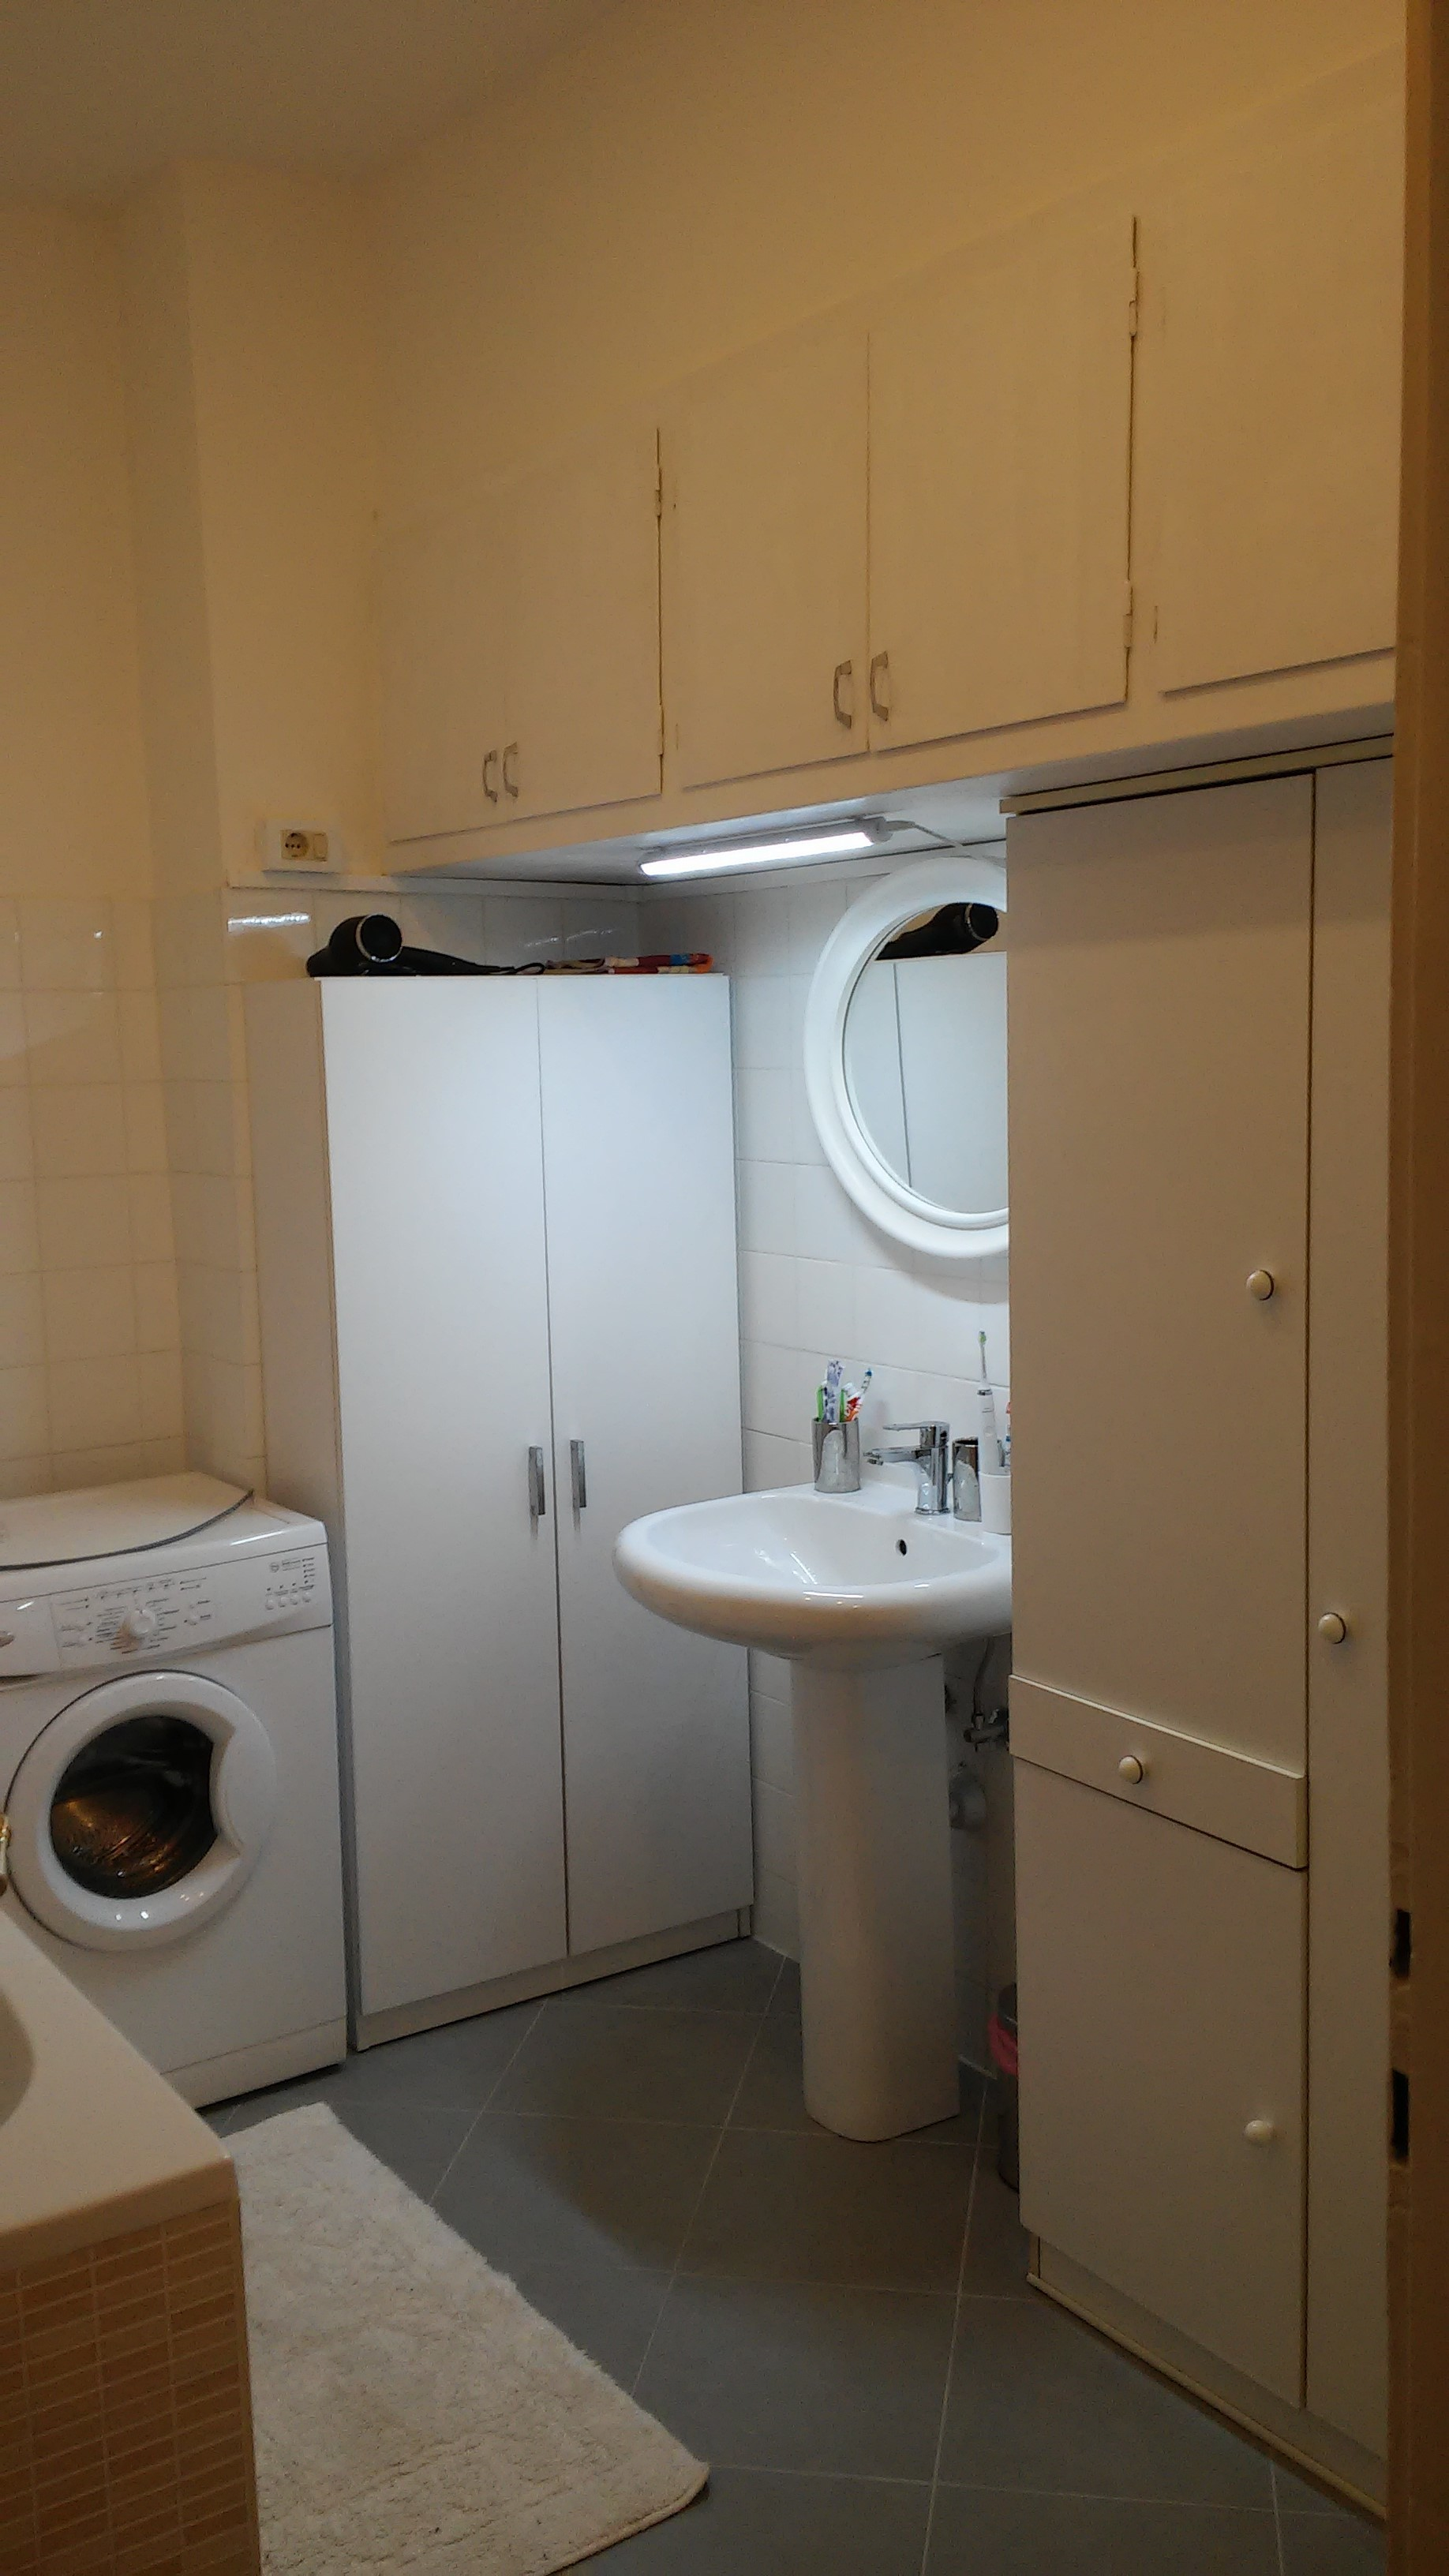 Room for rent in 2-bedroom apartment in Trieste